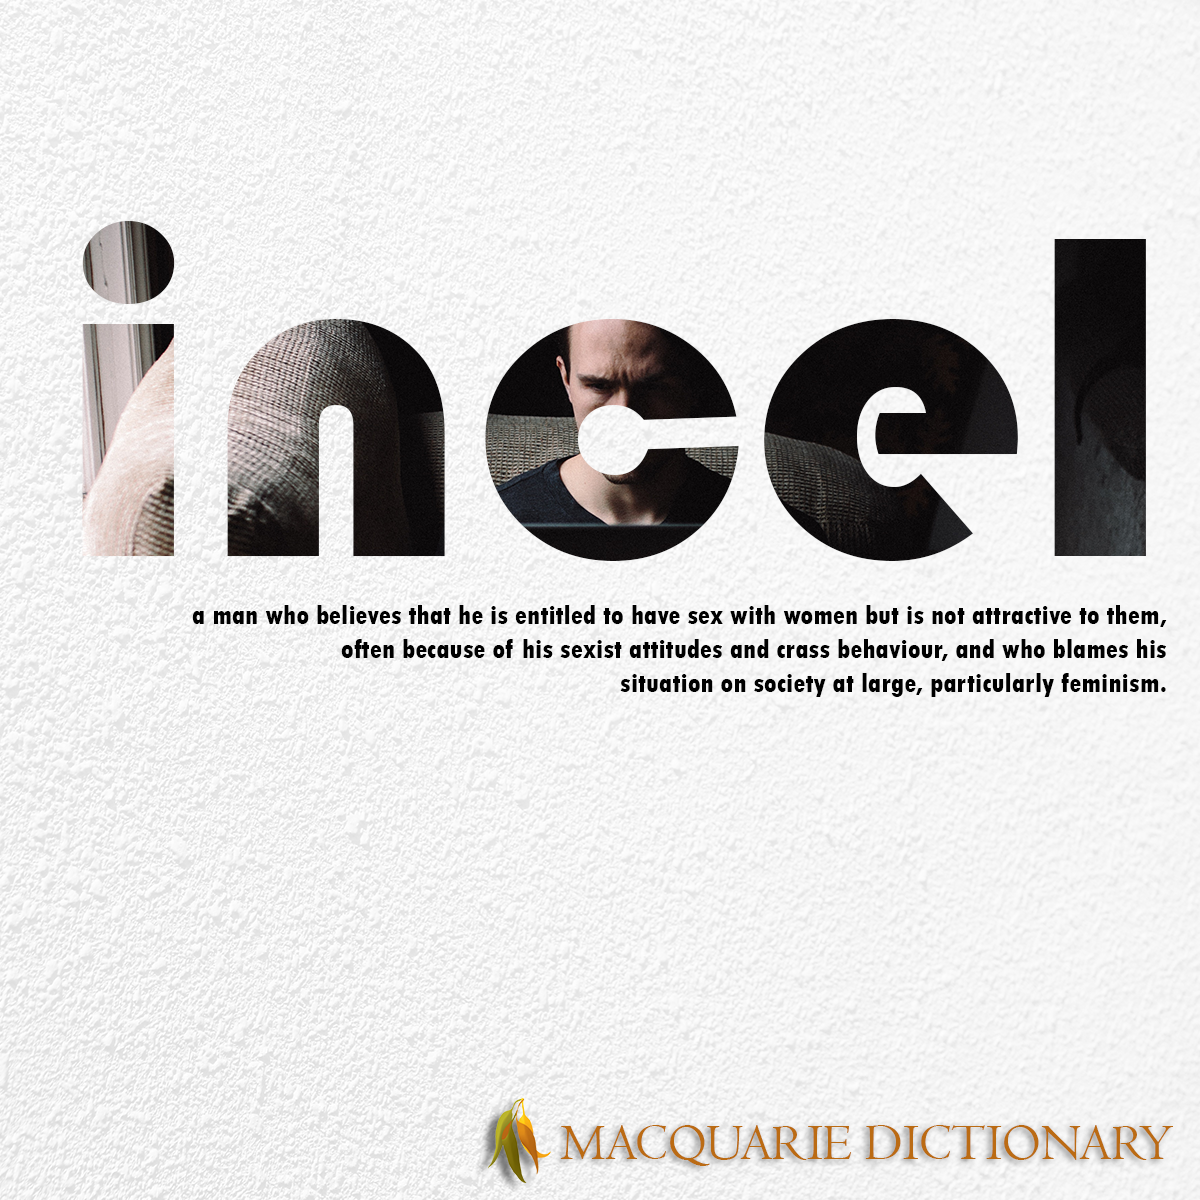 Image of Macquarie Dictionary Word of the Year - incel - a man who believes that he is entitled to have sex with women but is not attractive to them, often because of his sexist attitudes and crass behaviour, and who blames his situation on society at large, particularly feminism.